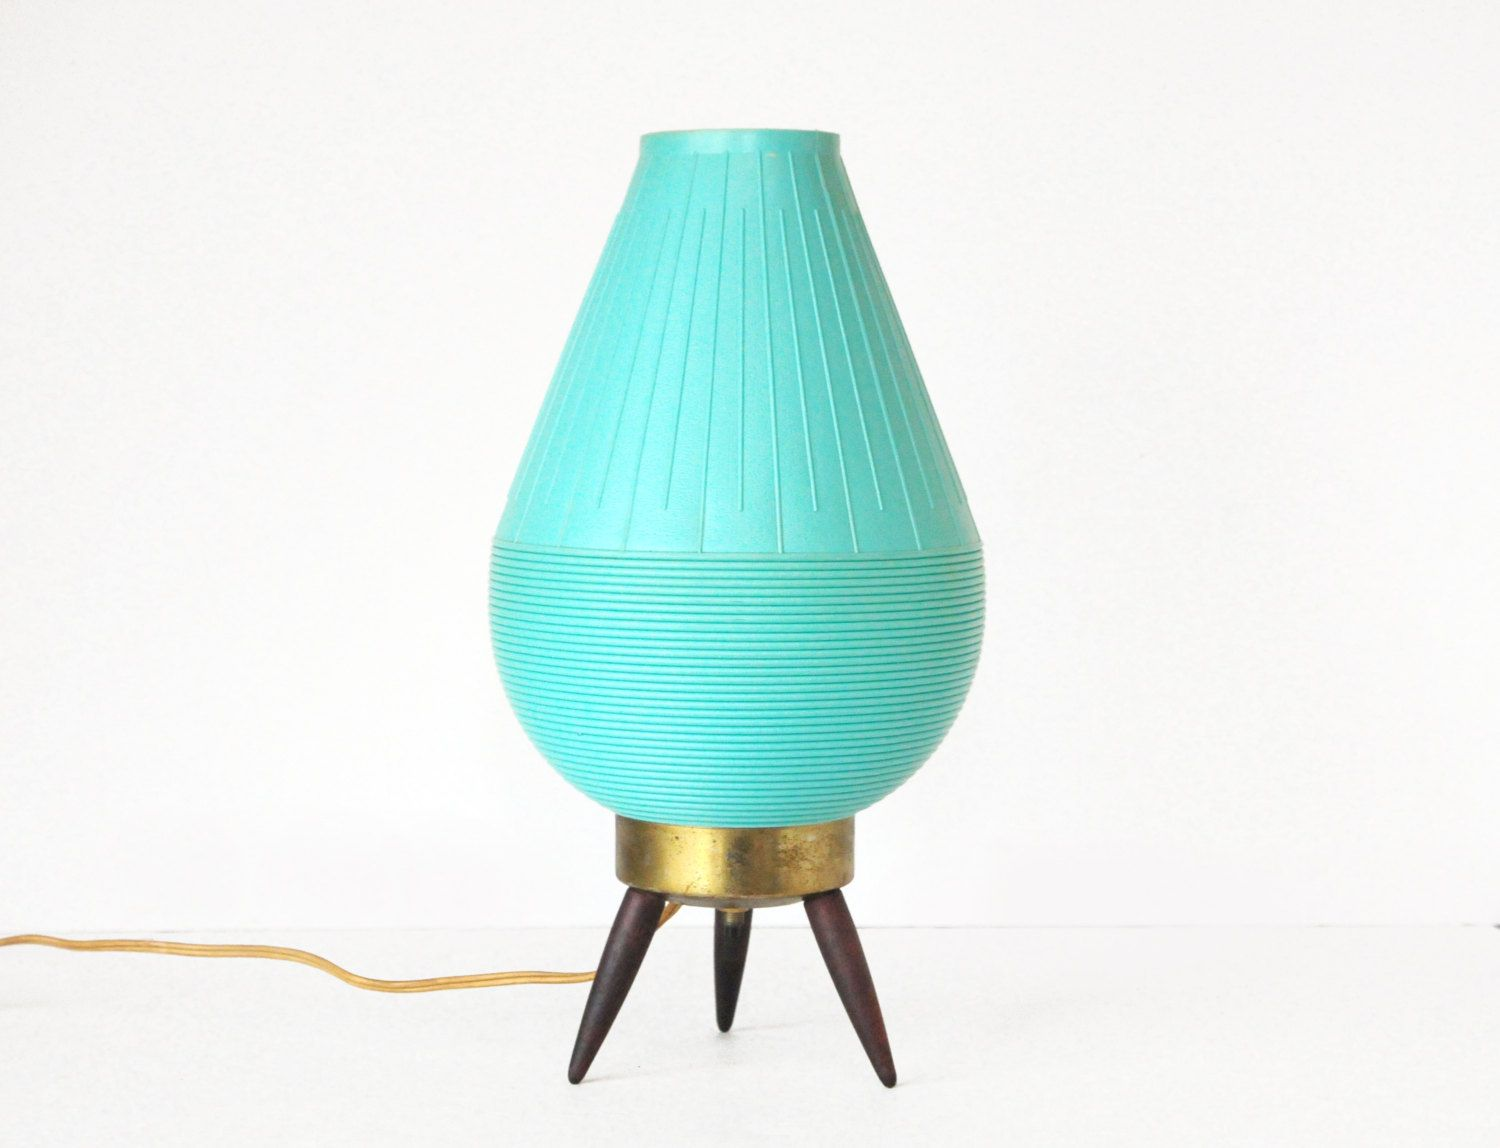 beehive lamp, mid century modern,sweet! see more views https://